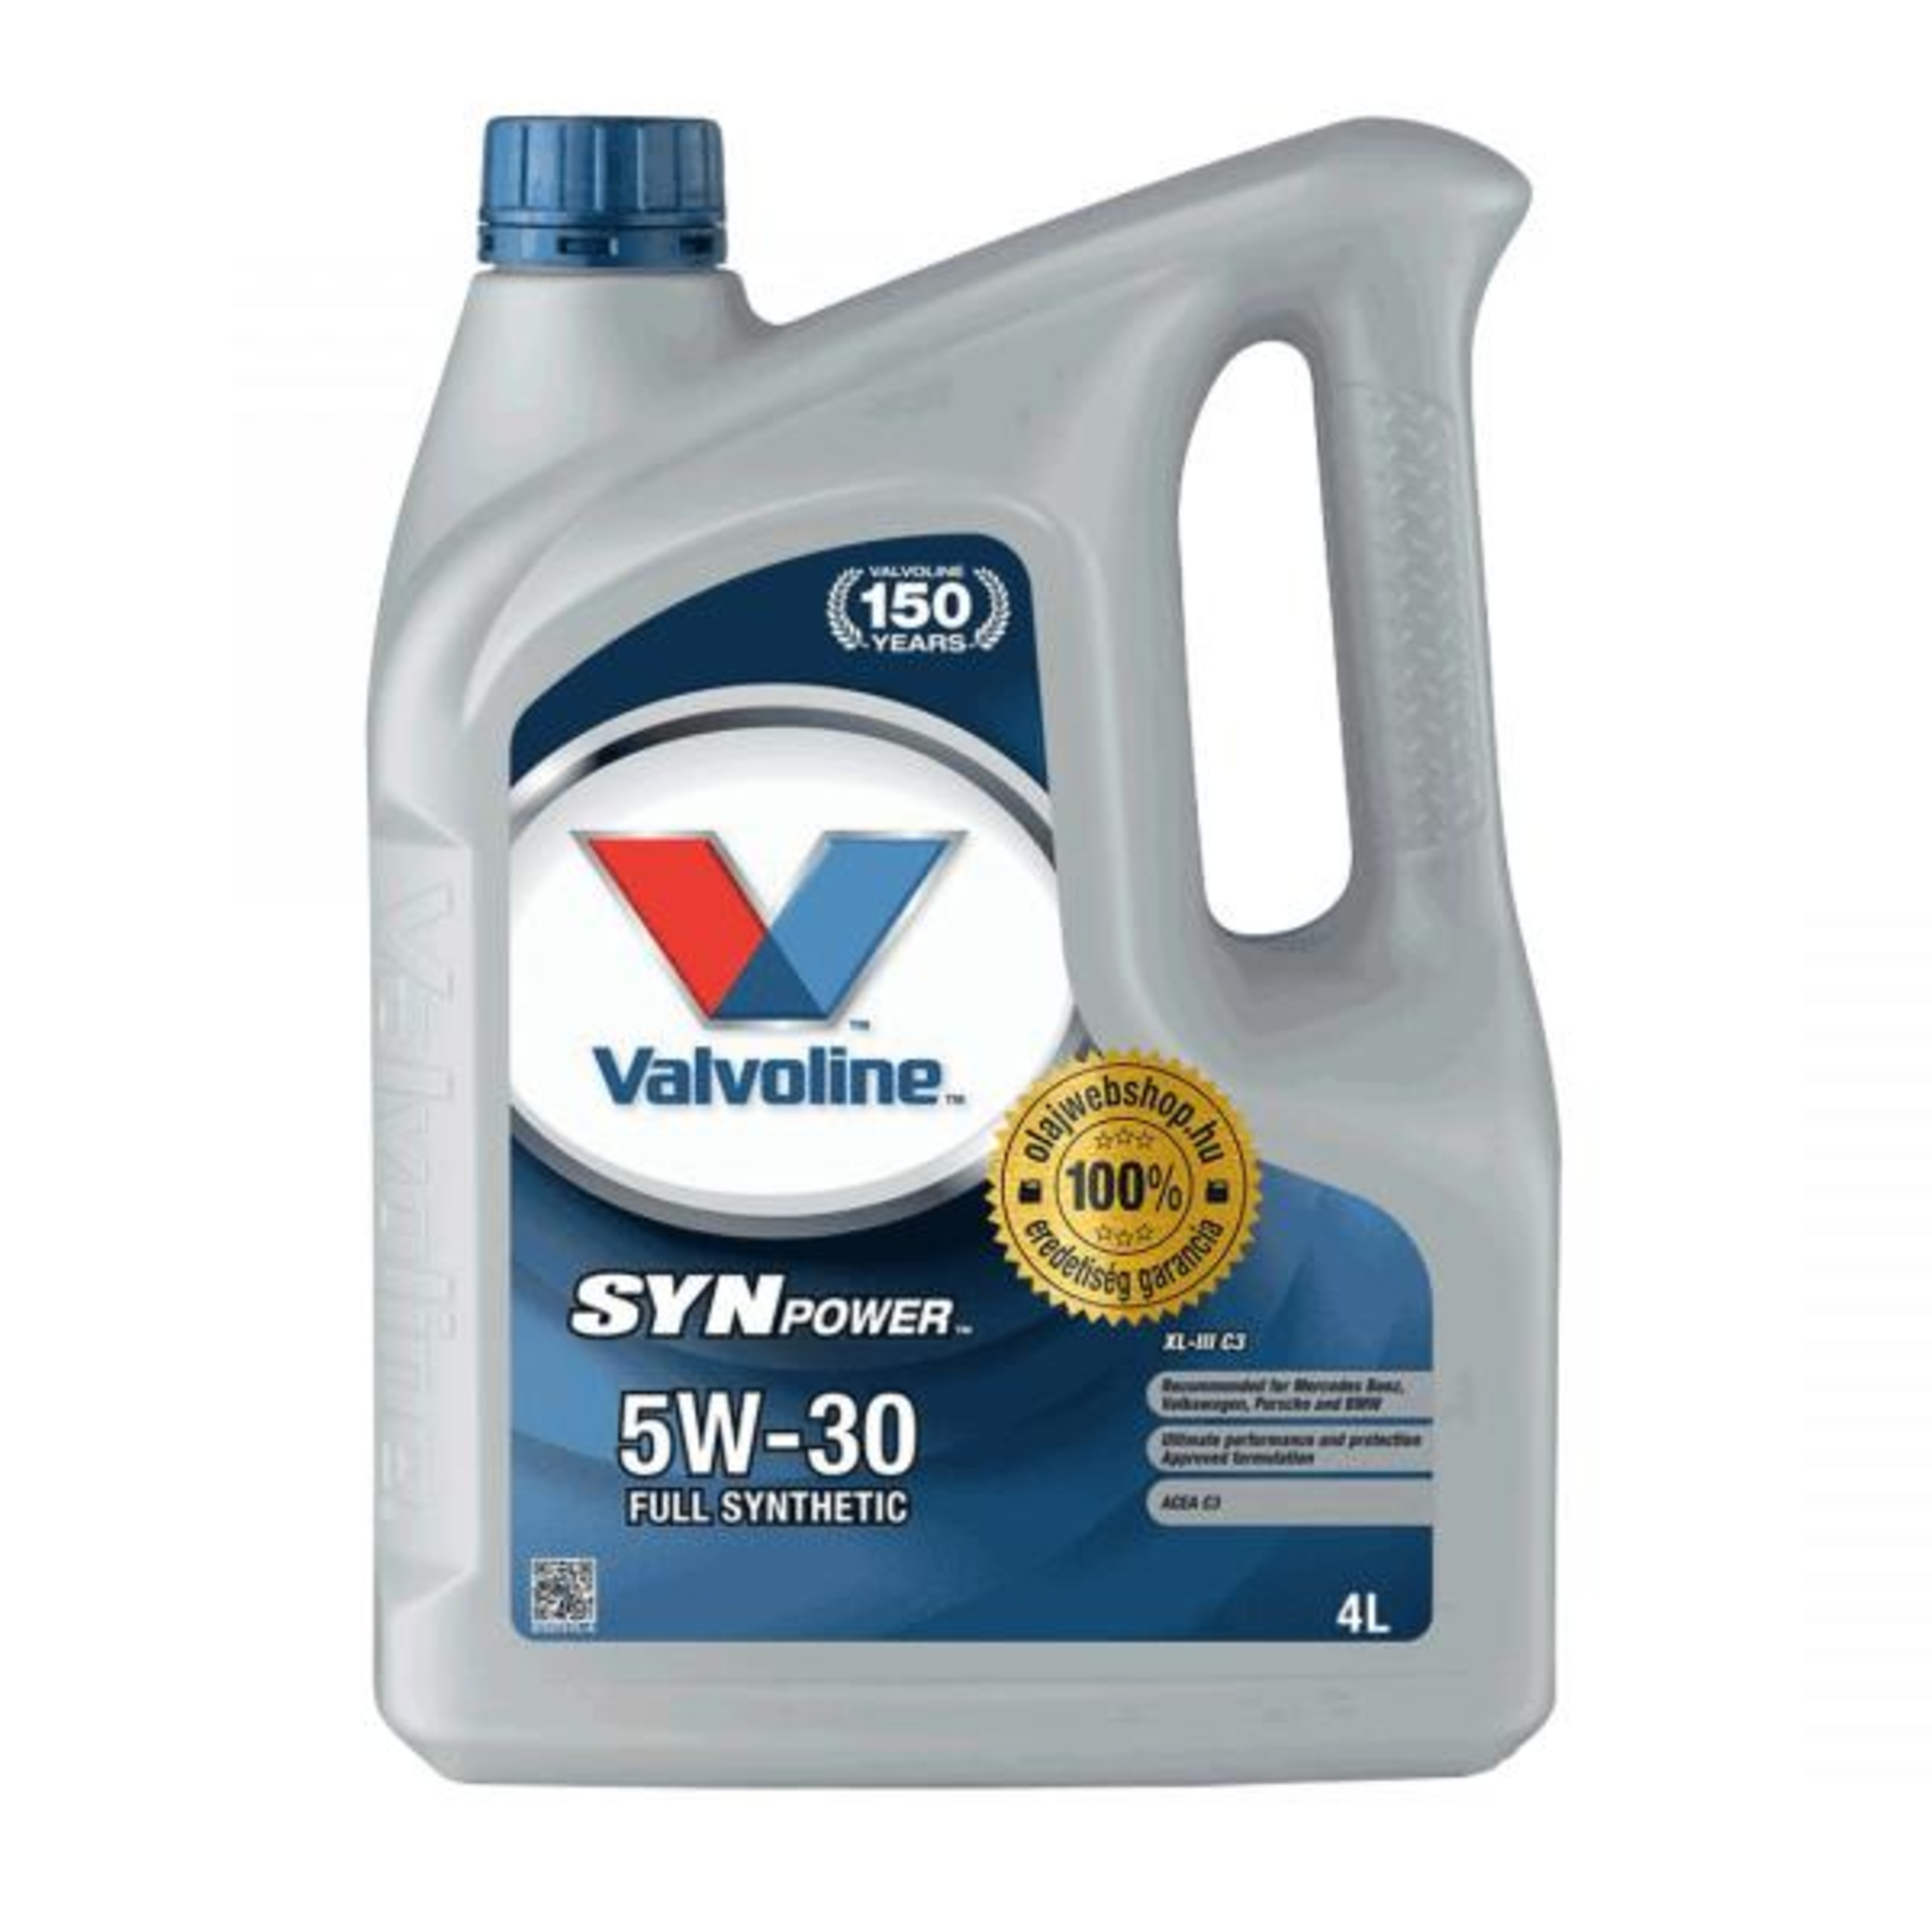 valvoline synpower full synthetic xl-iii c3 sae 5w30 4l